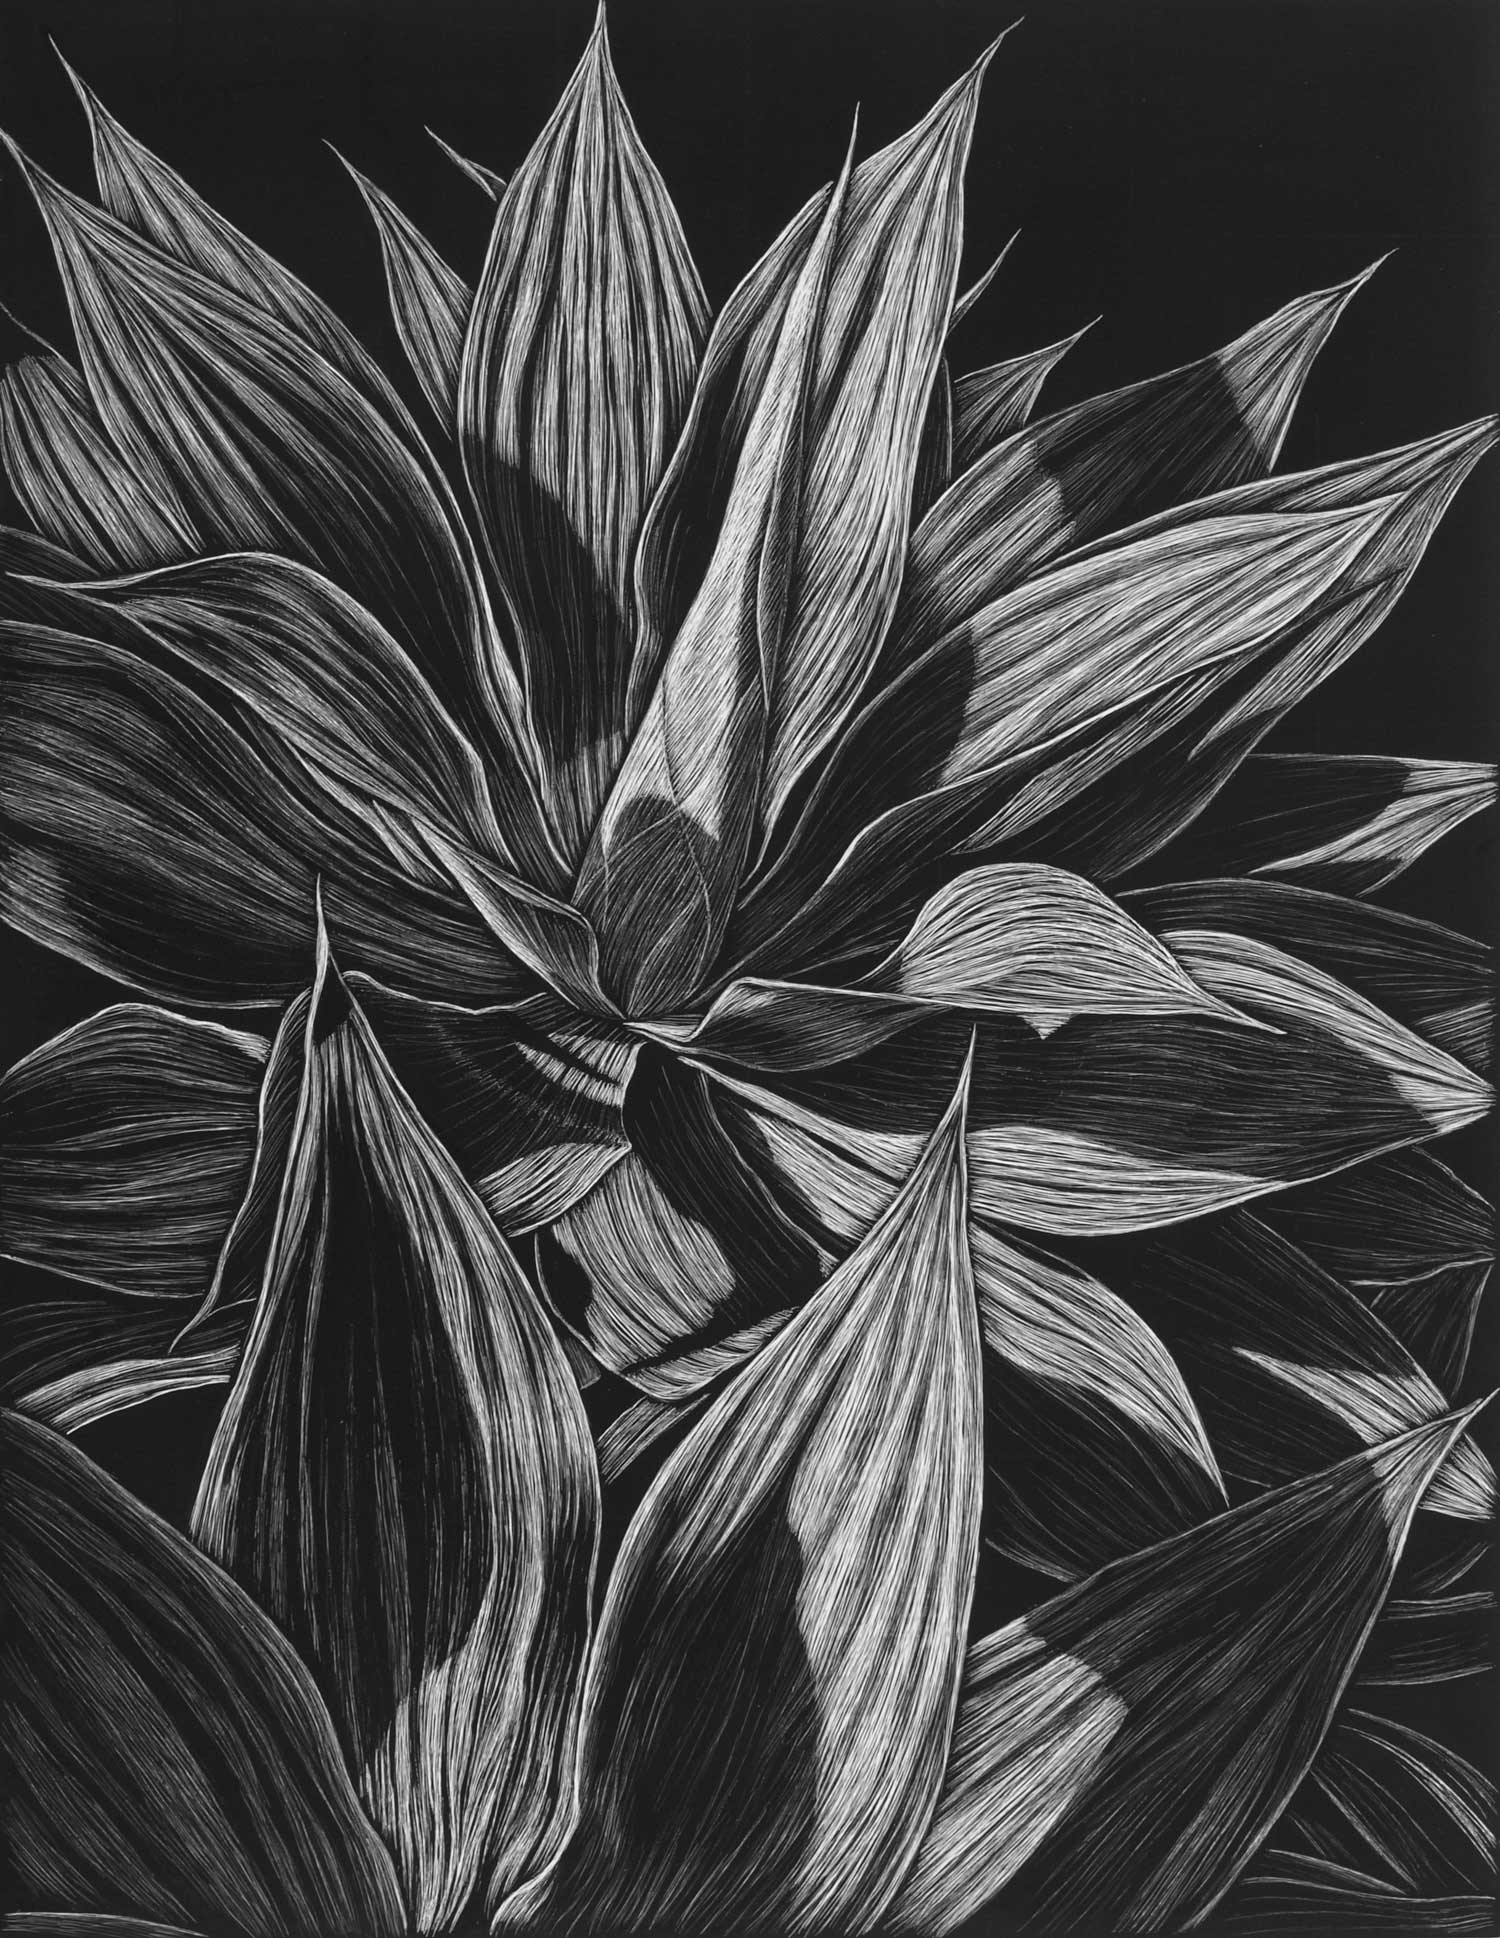 AGAVE, CLAREVILLE BEACH III  45.5 X 35.5 CM EDITION OF 50  PIGMENT ON COTTON RAG PAPER  $750